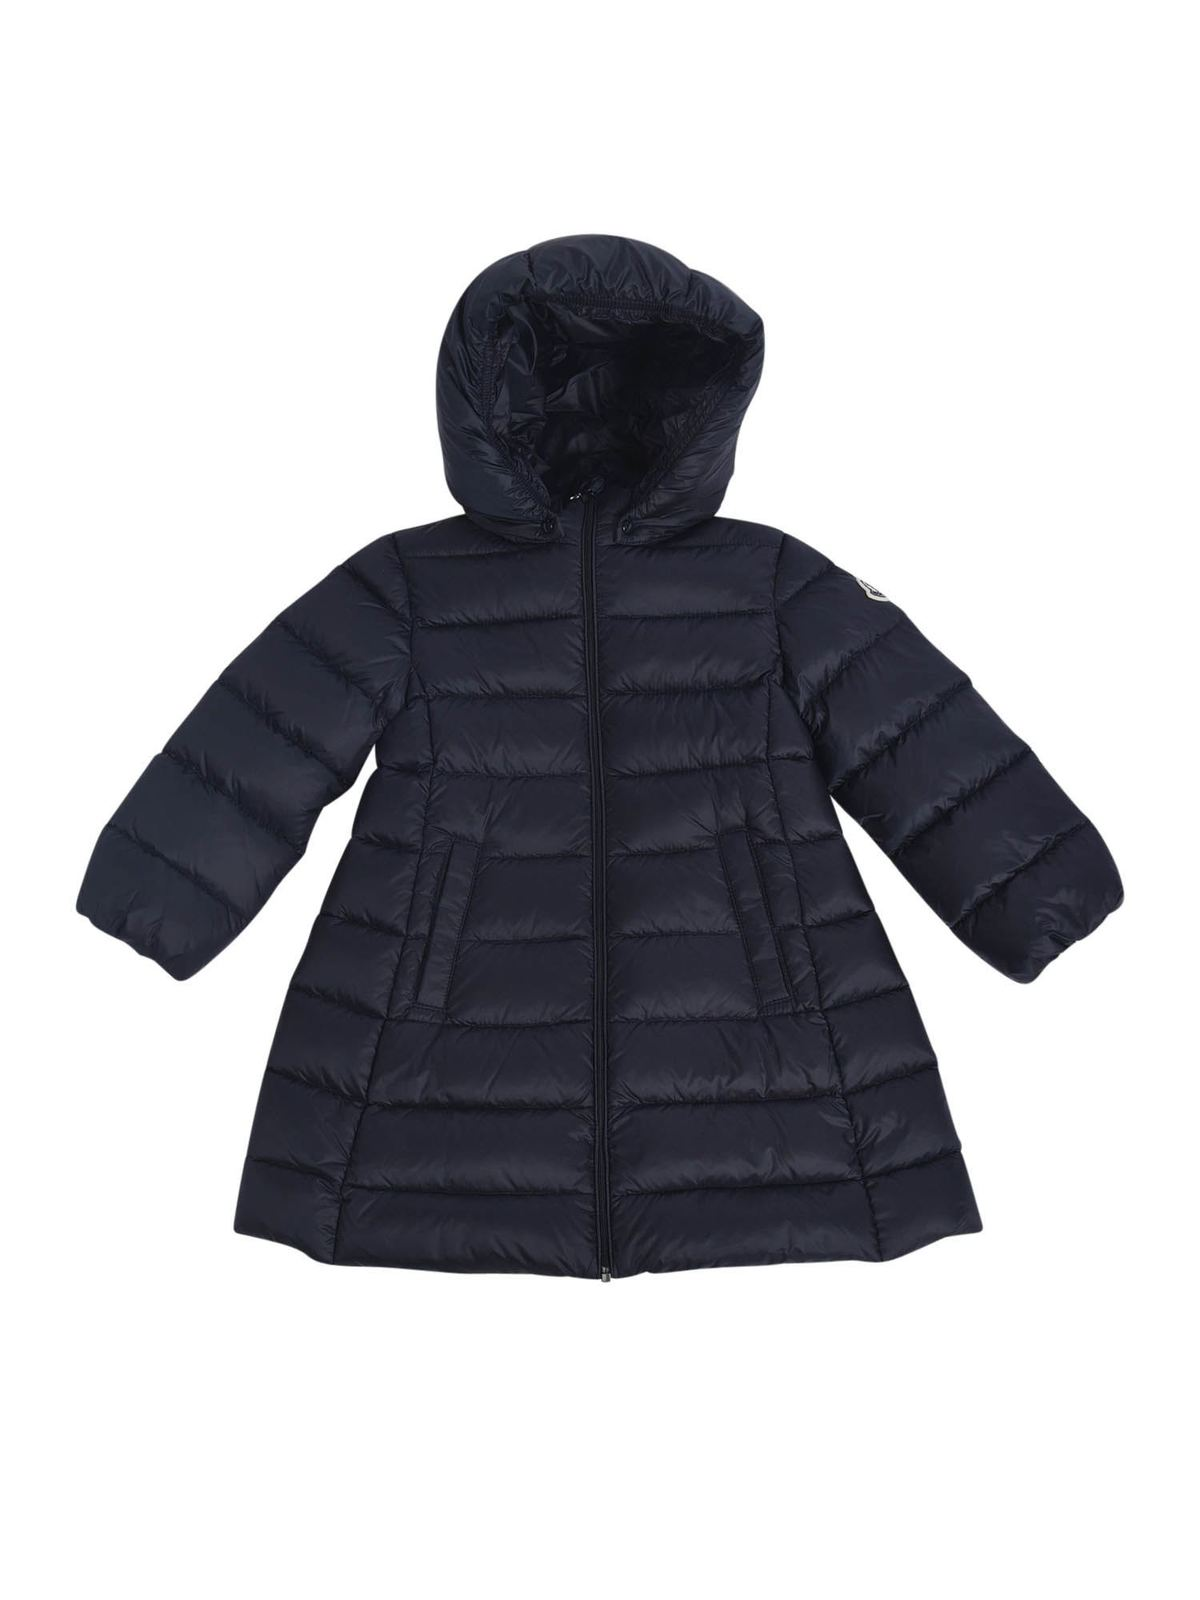 MONCLER JR MAJEURE DOWN JACKET IN BLUE